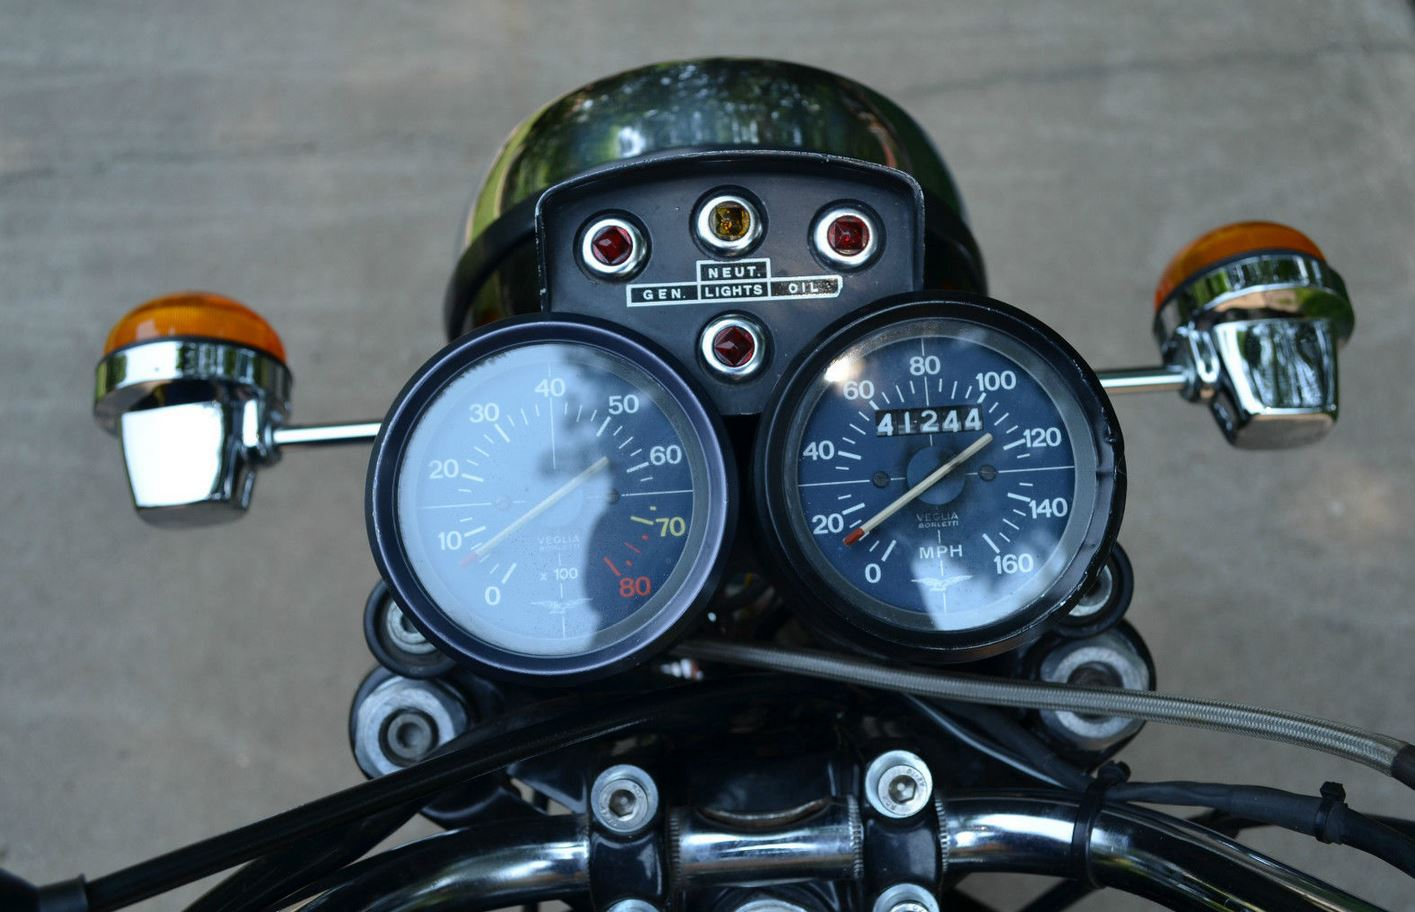 Moto Guzzi 850 California images #107145